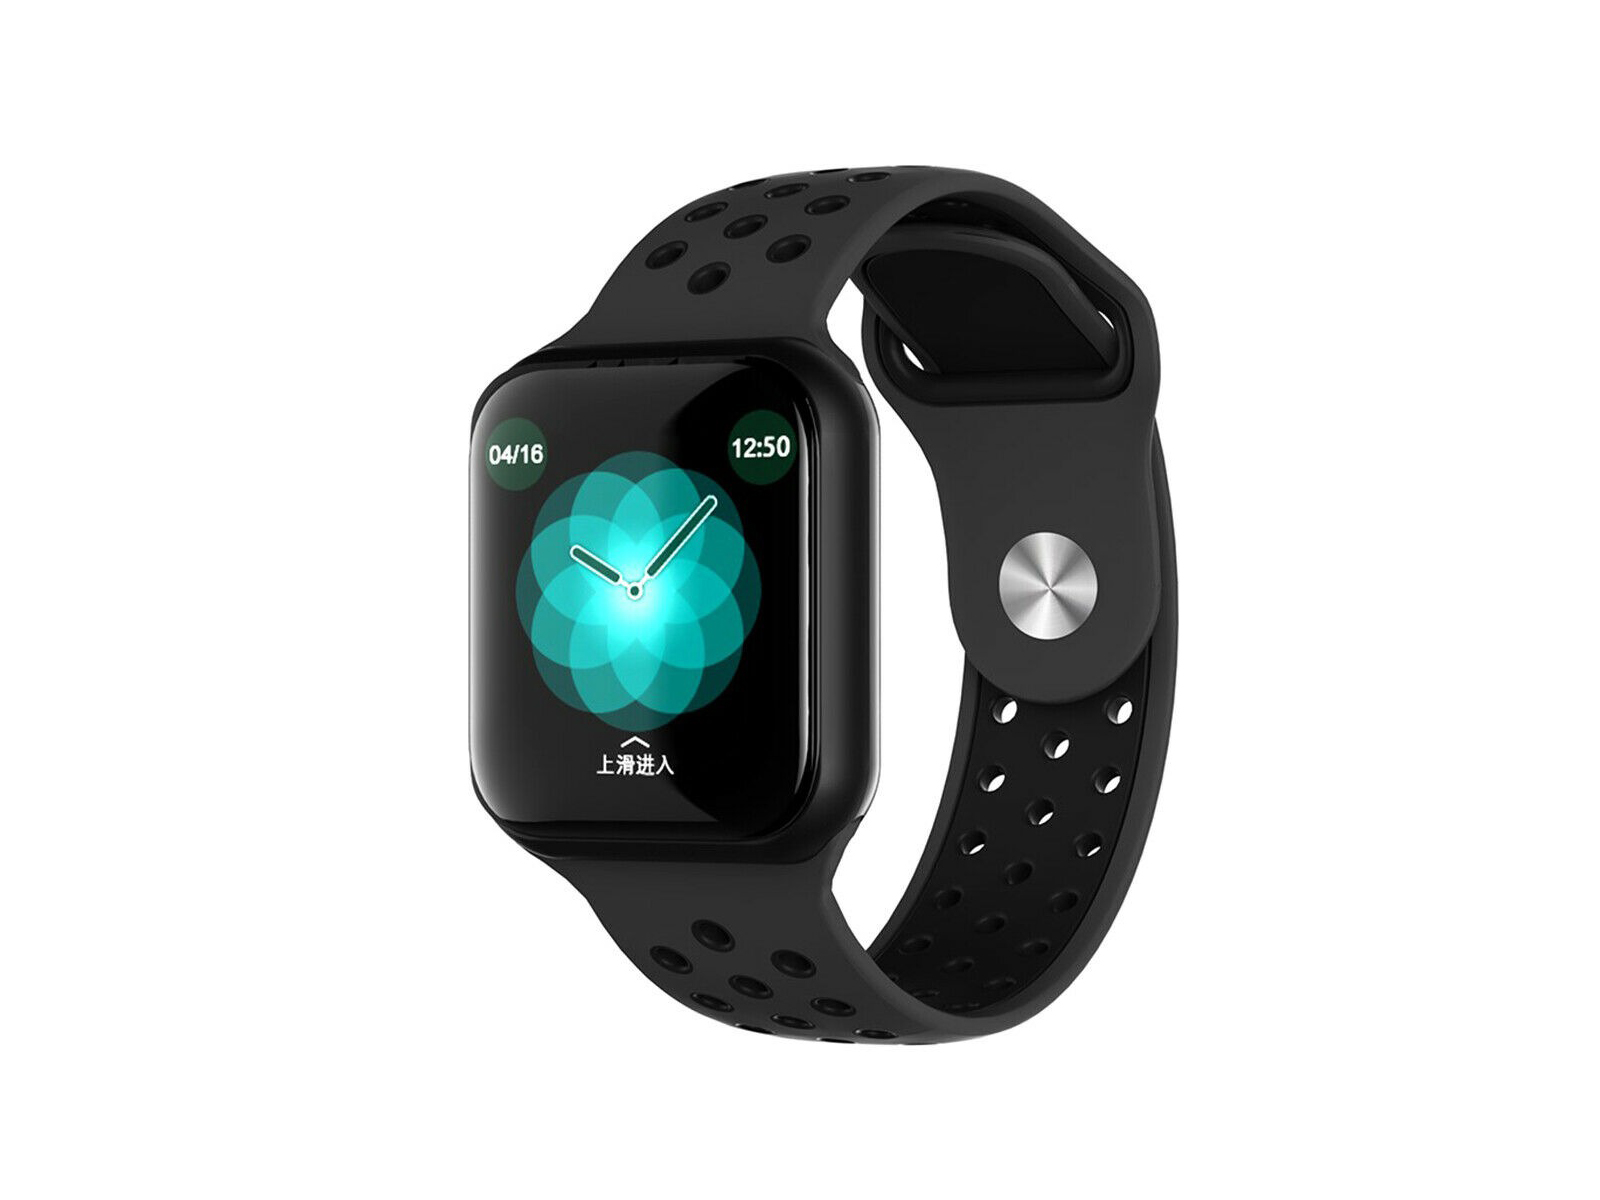 Costa solo 14 euro questo smartwatch ispirato a Apple Watch